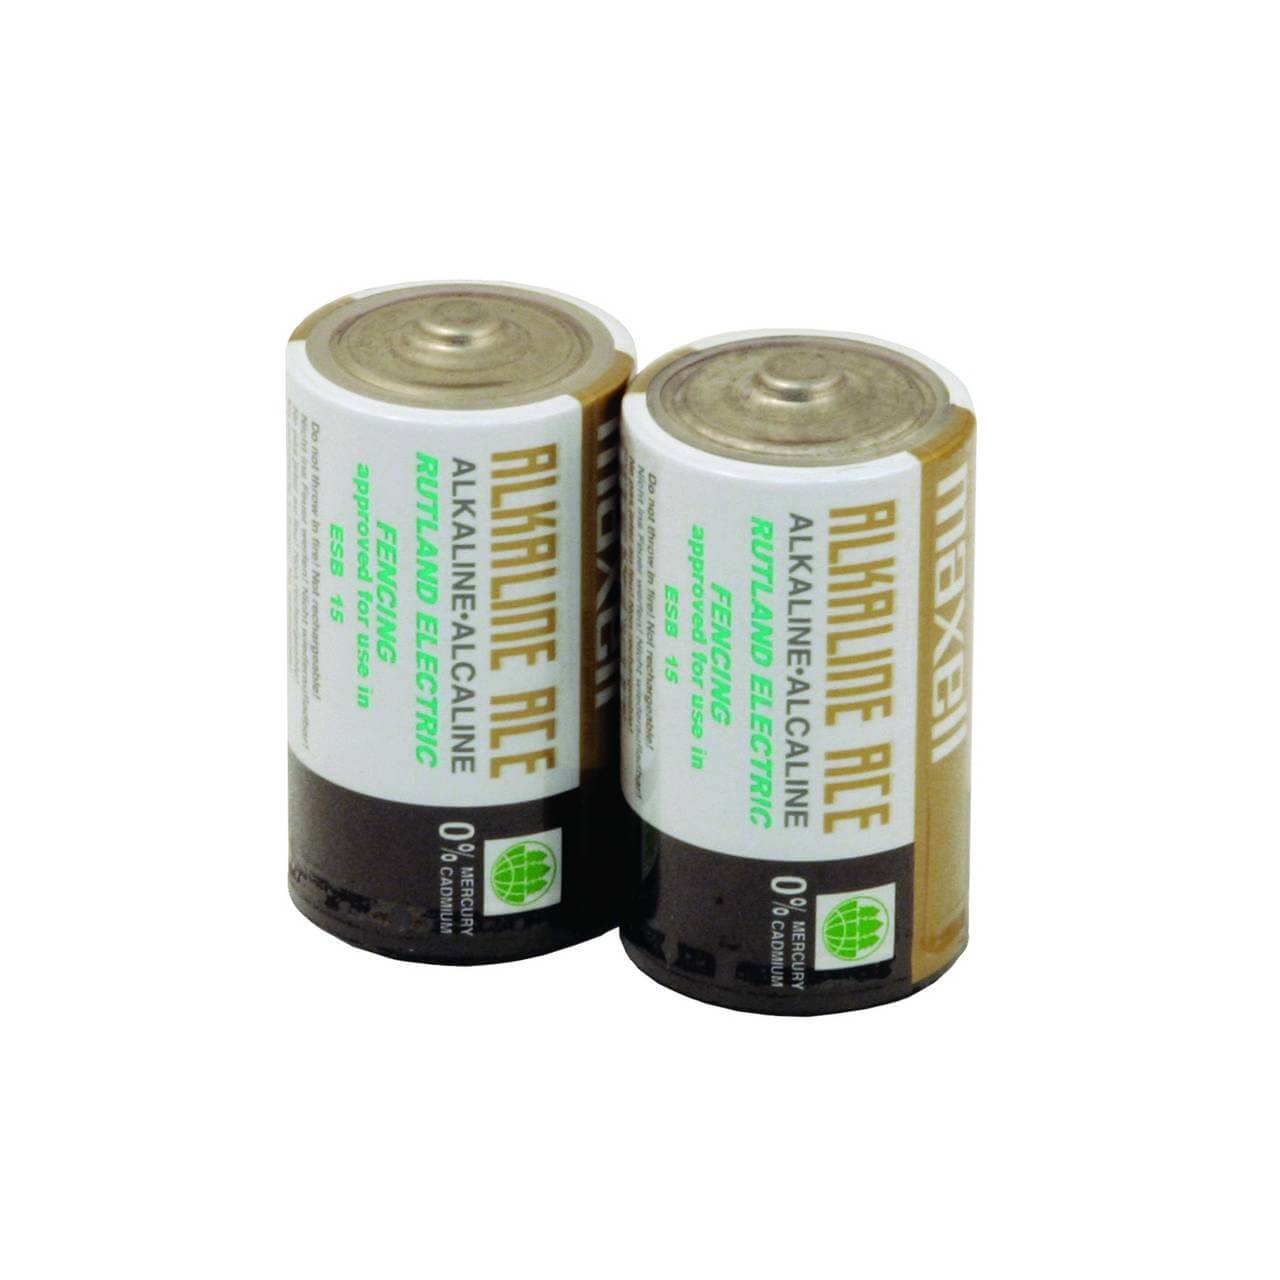 010528 - 22-108 Dx2 Batteries